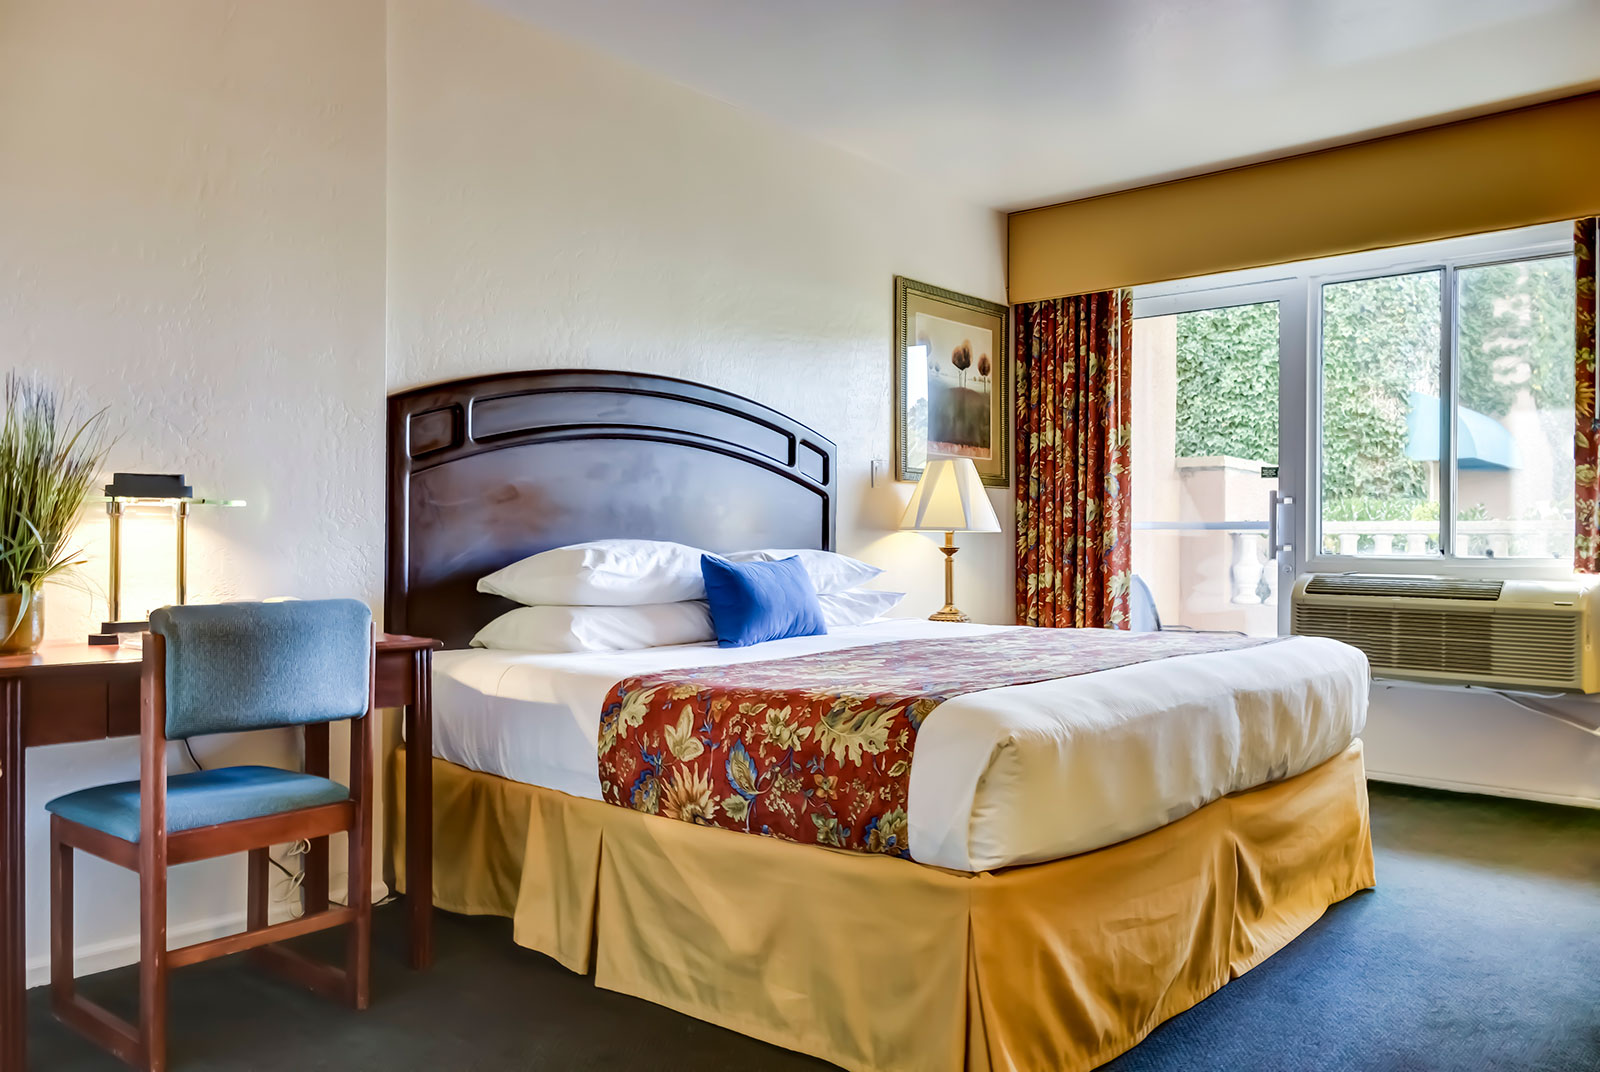 Forest Villas Hotel guest room in Prescott, Arizona